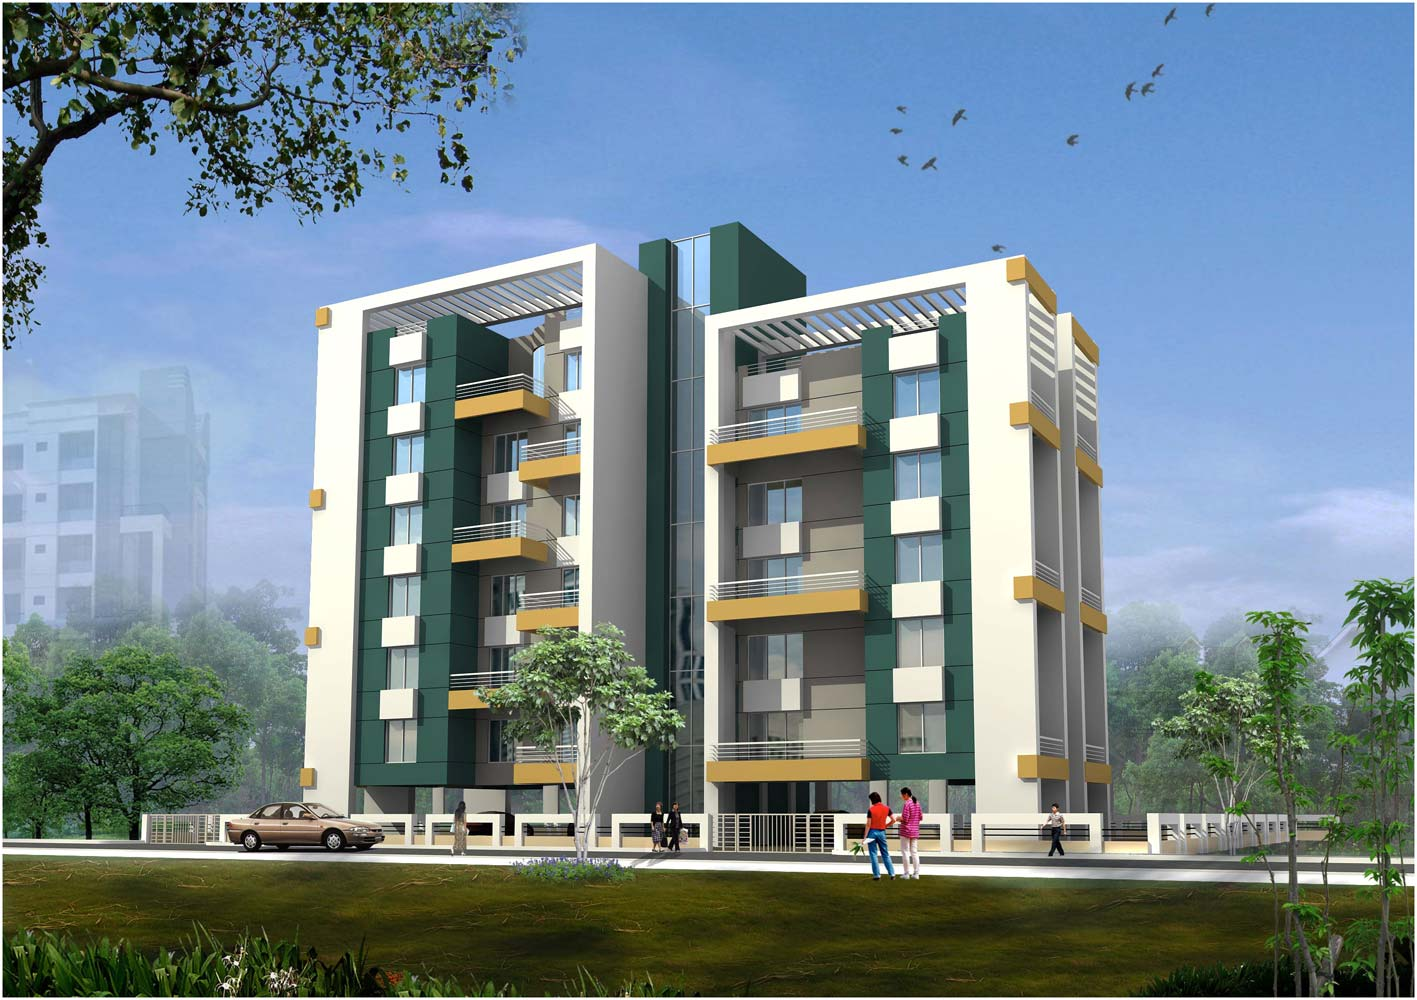 Manas dreams baner pune flats for sale in manas dreams for Building an estate